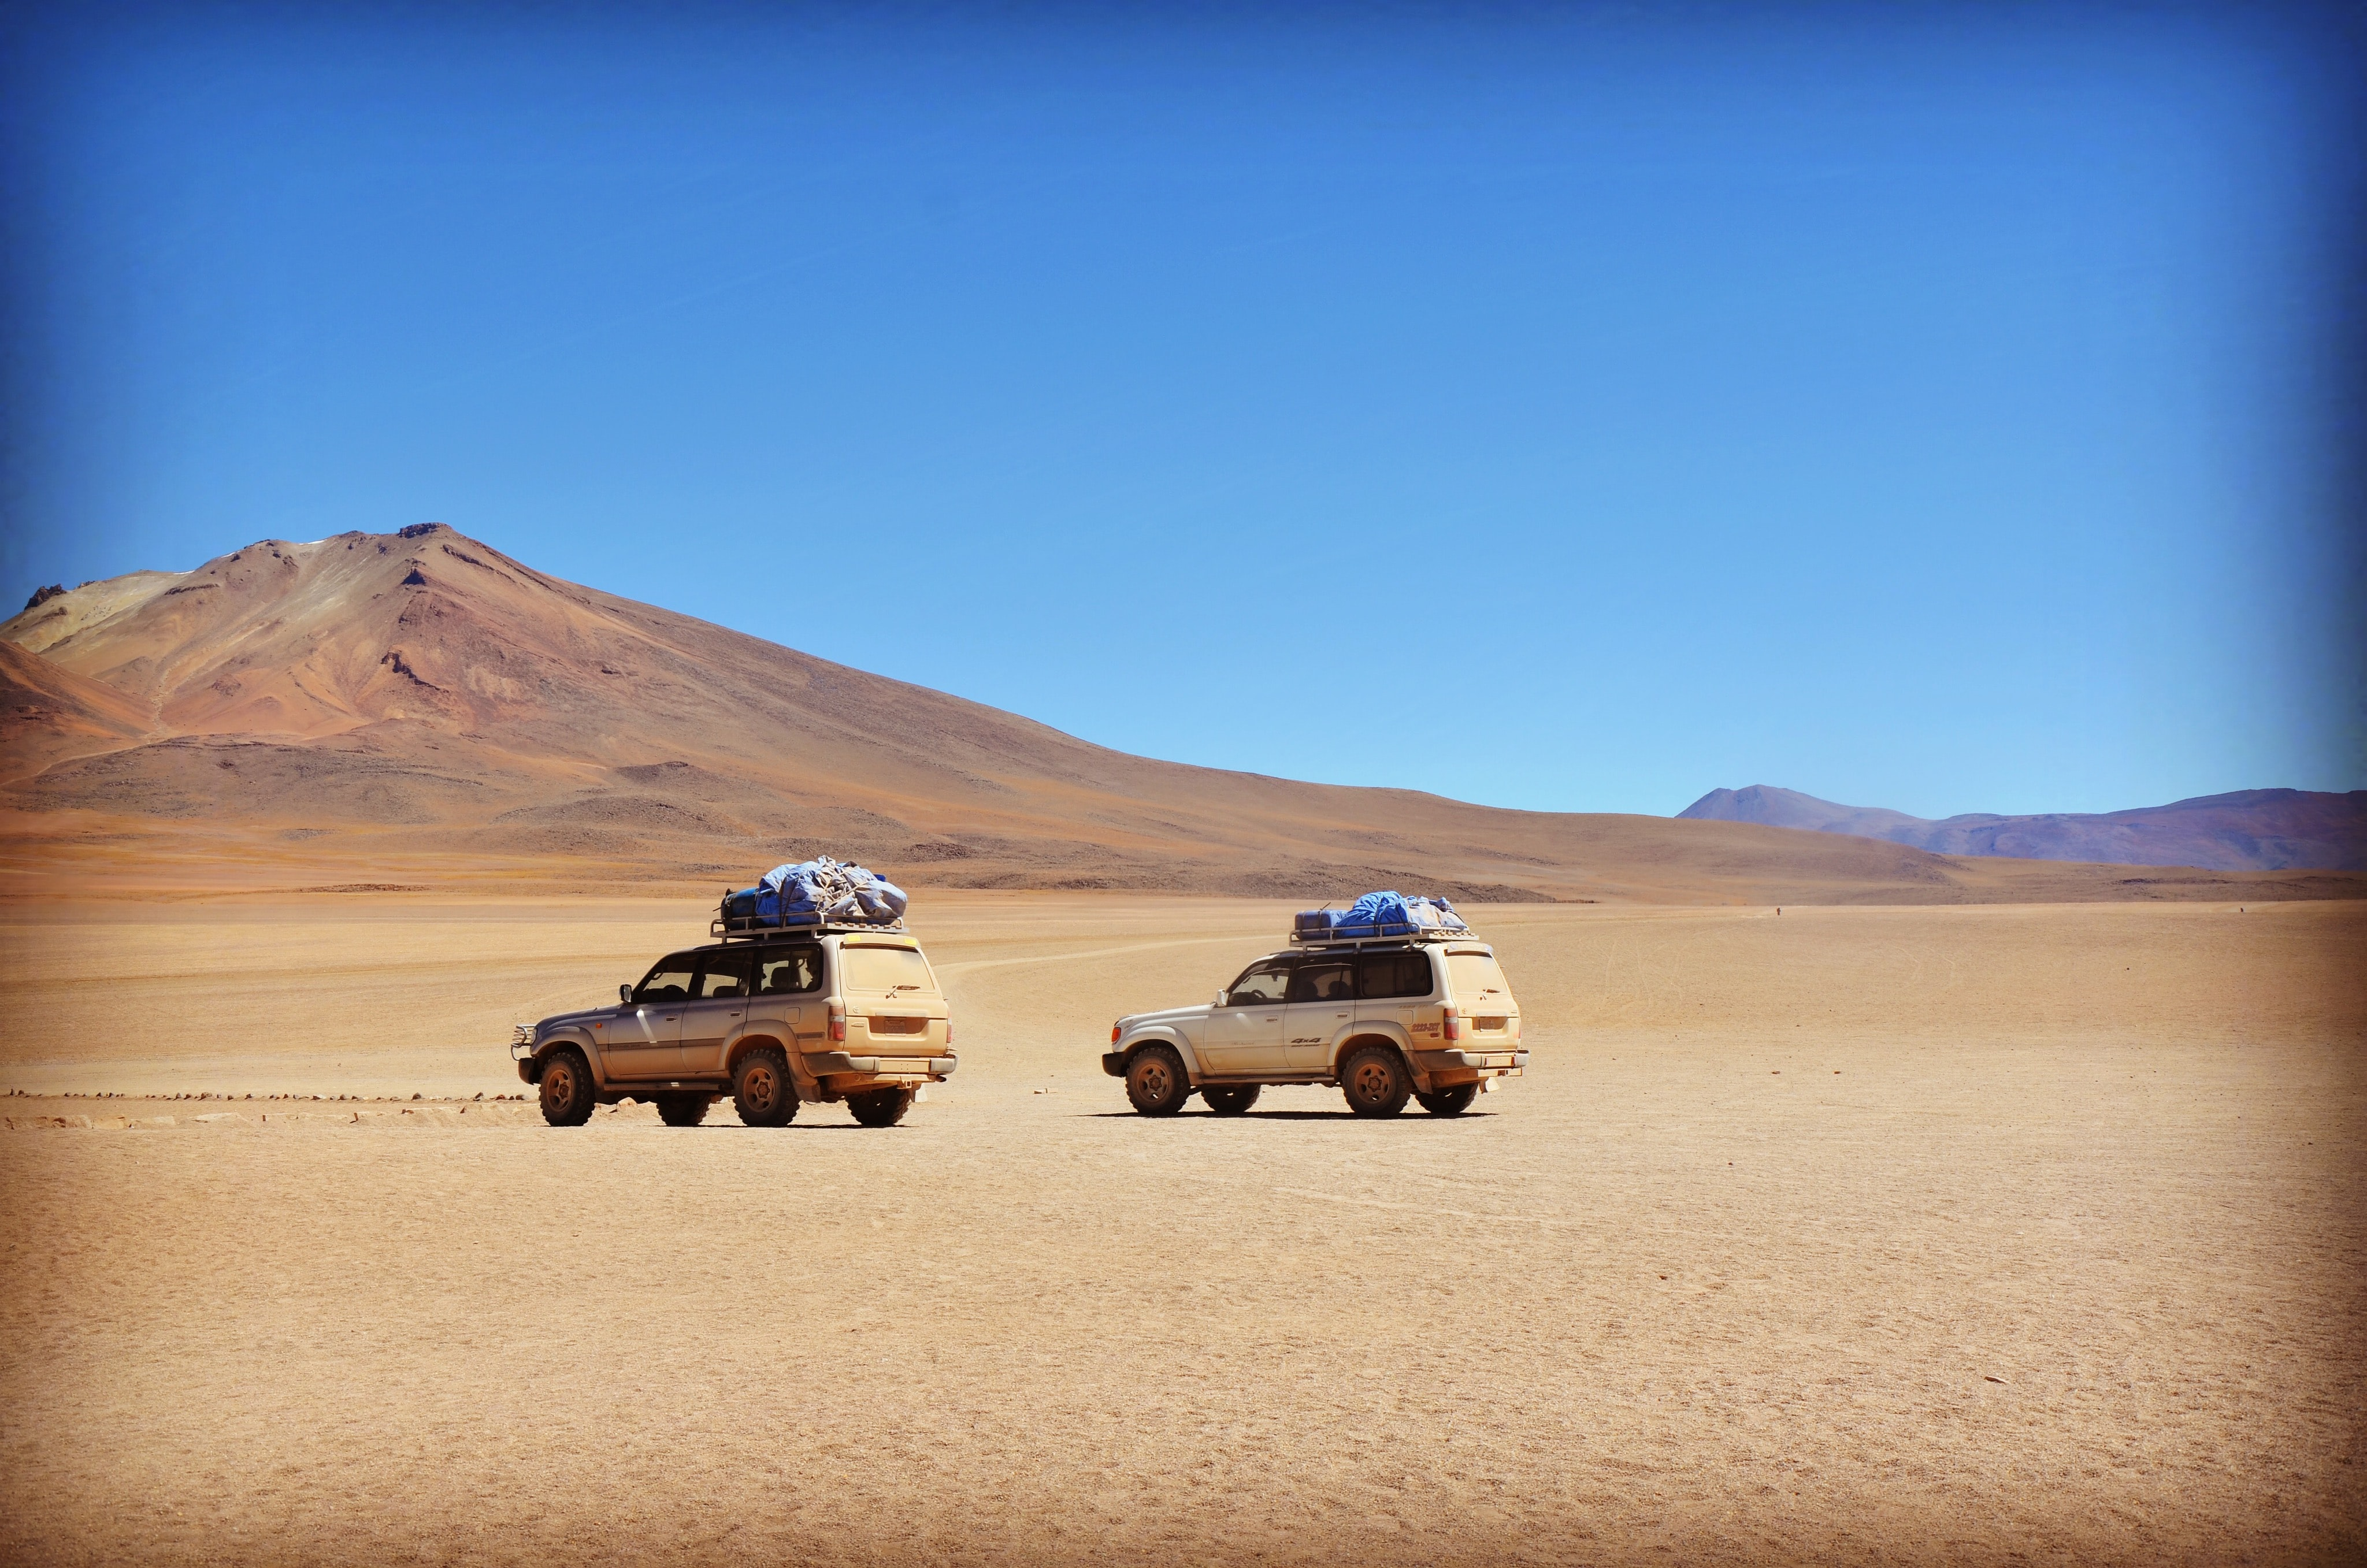 Two off-road vehicles in a mountain desert under clear sky